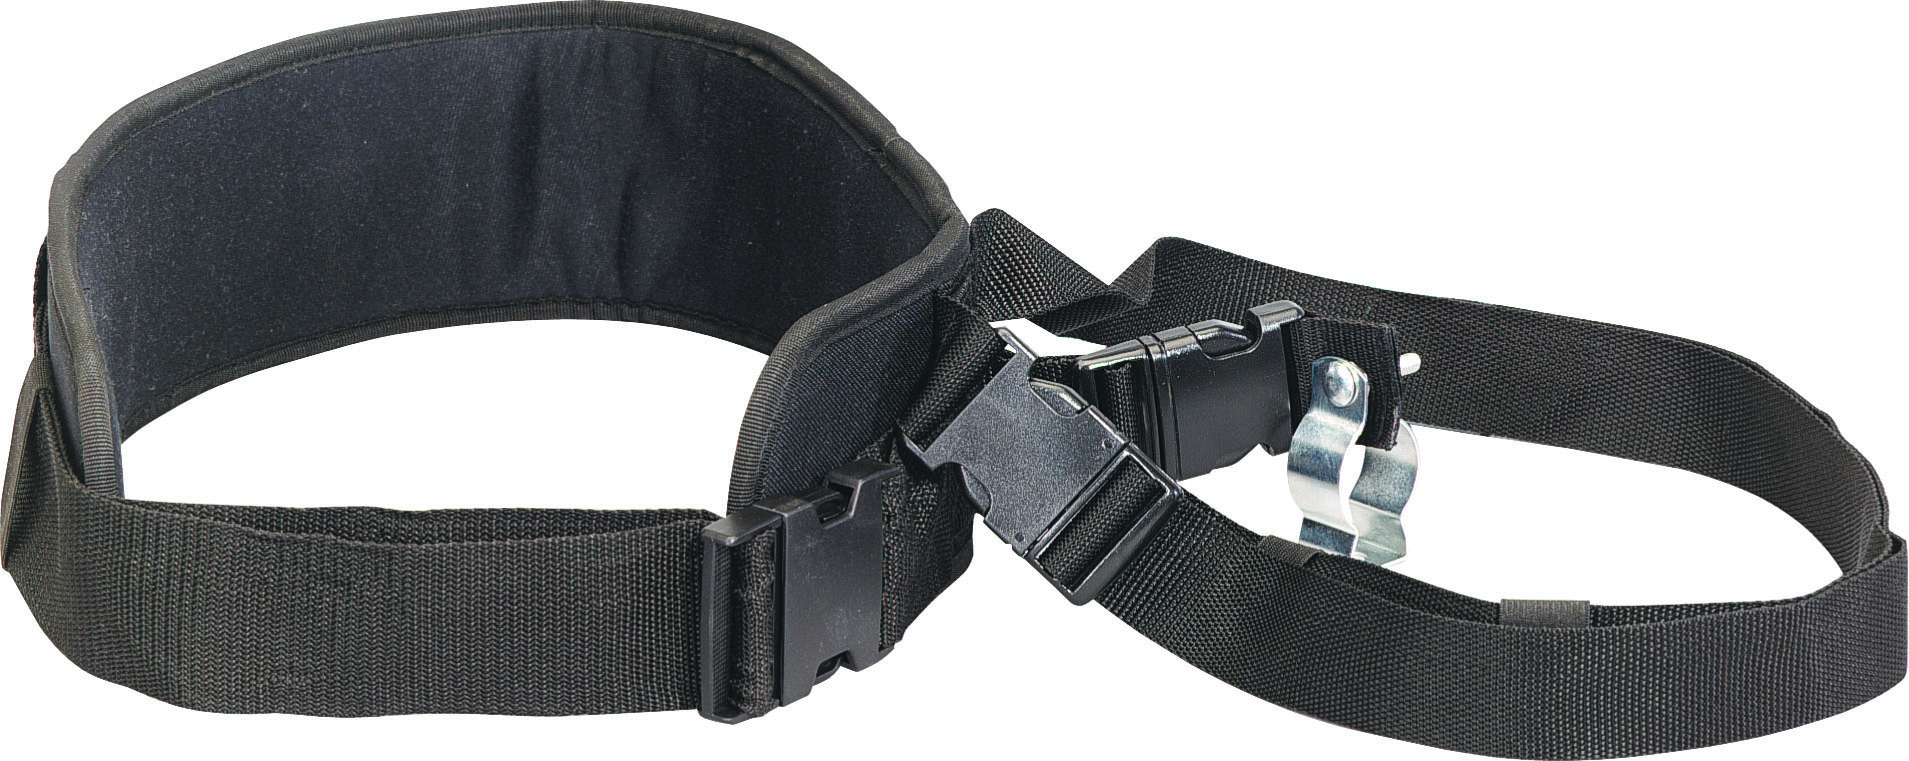 Wand belt - adjustable